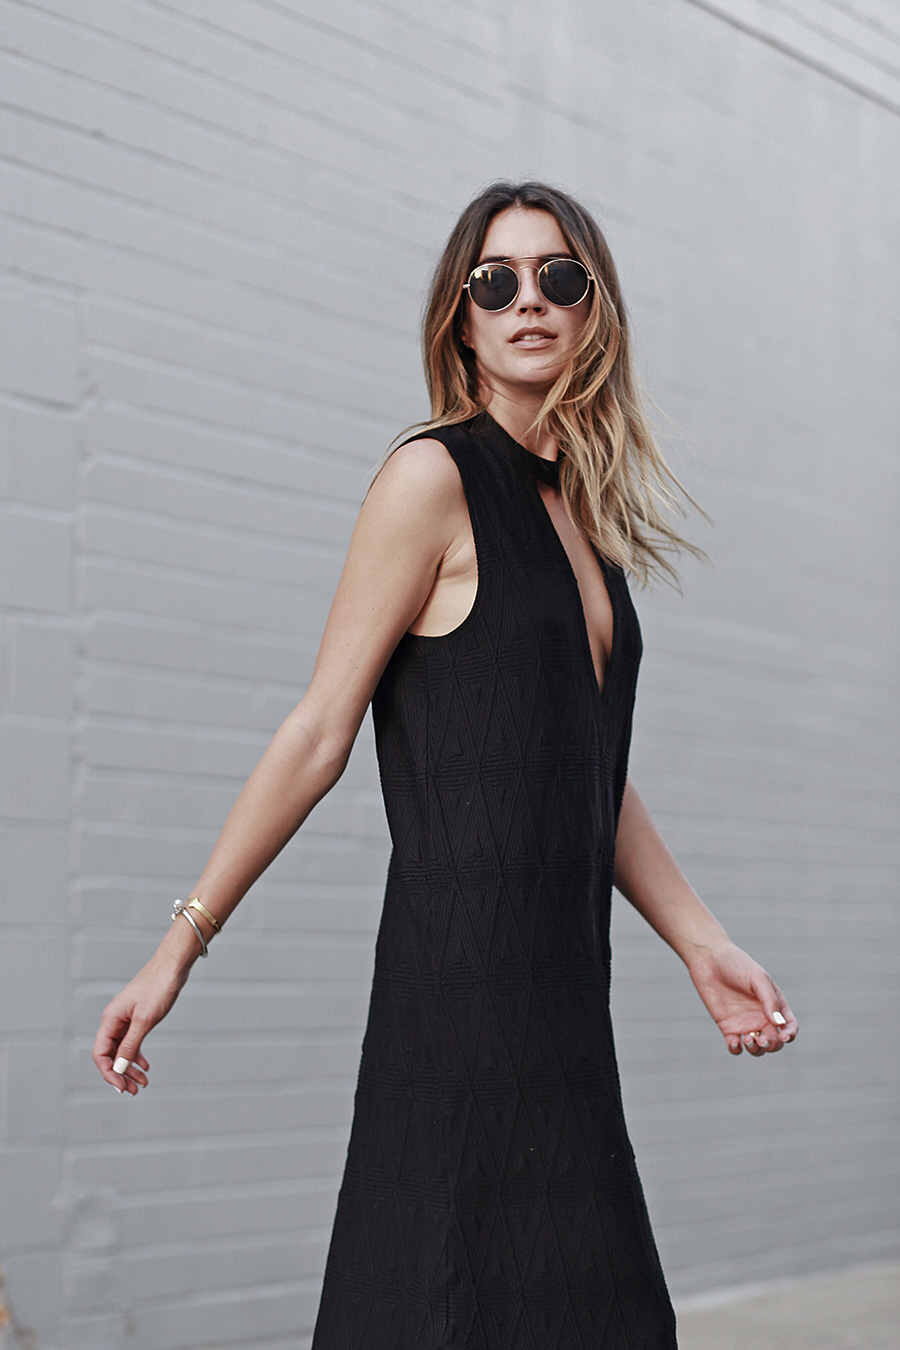 Round Sunglasses Little Black Dress Ombre Hair